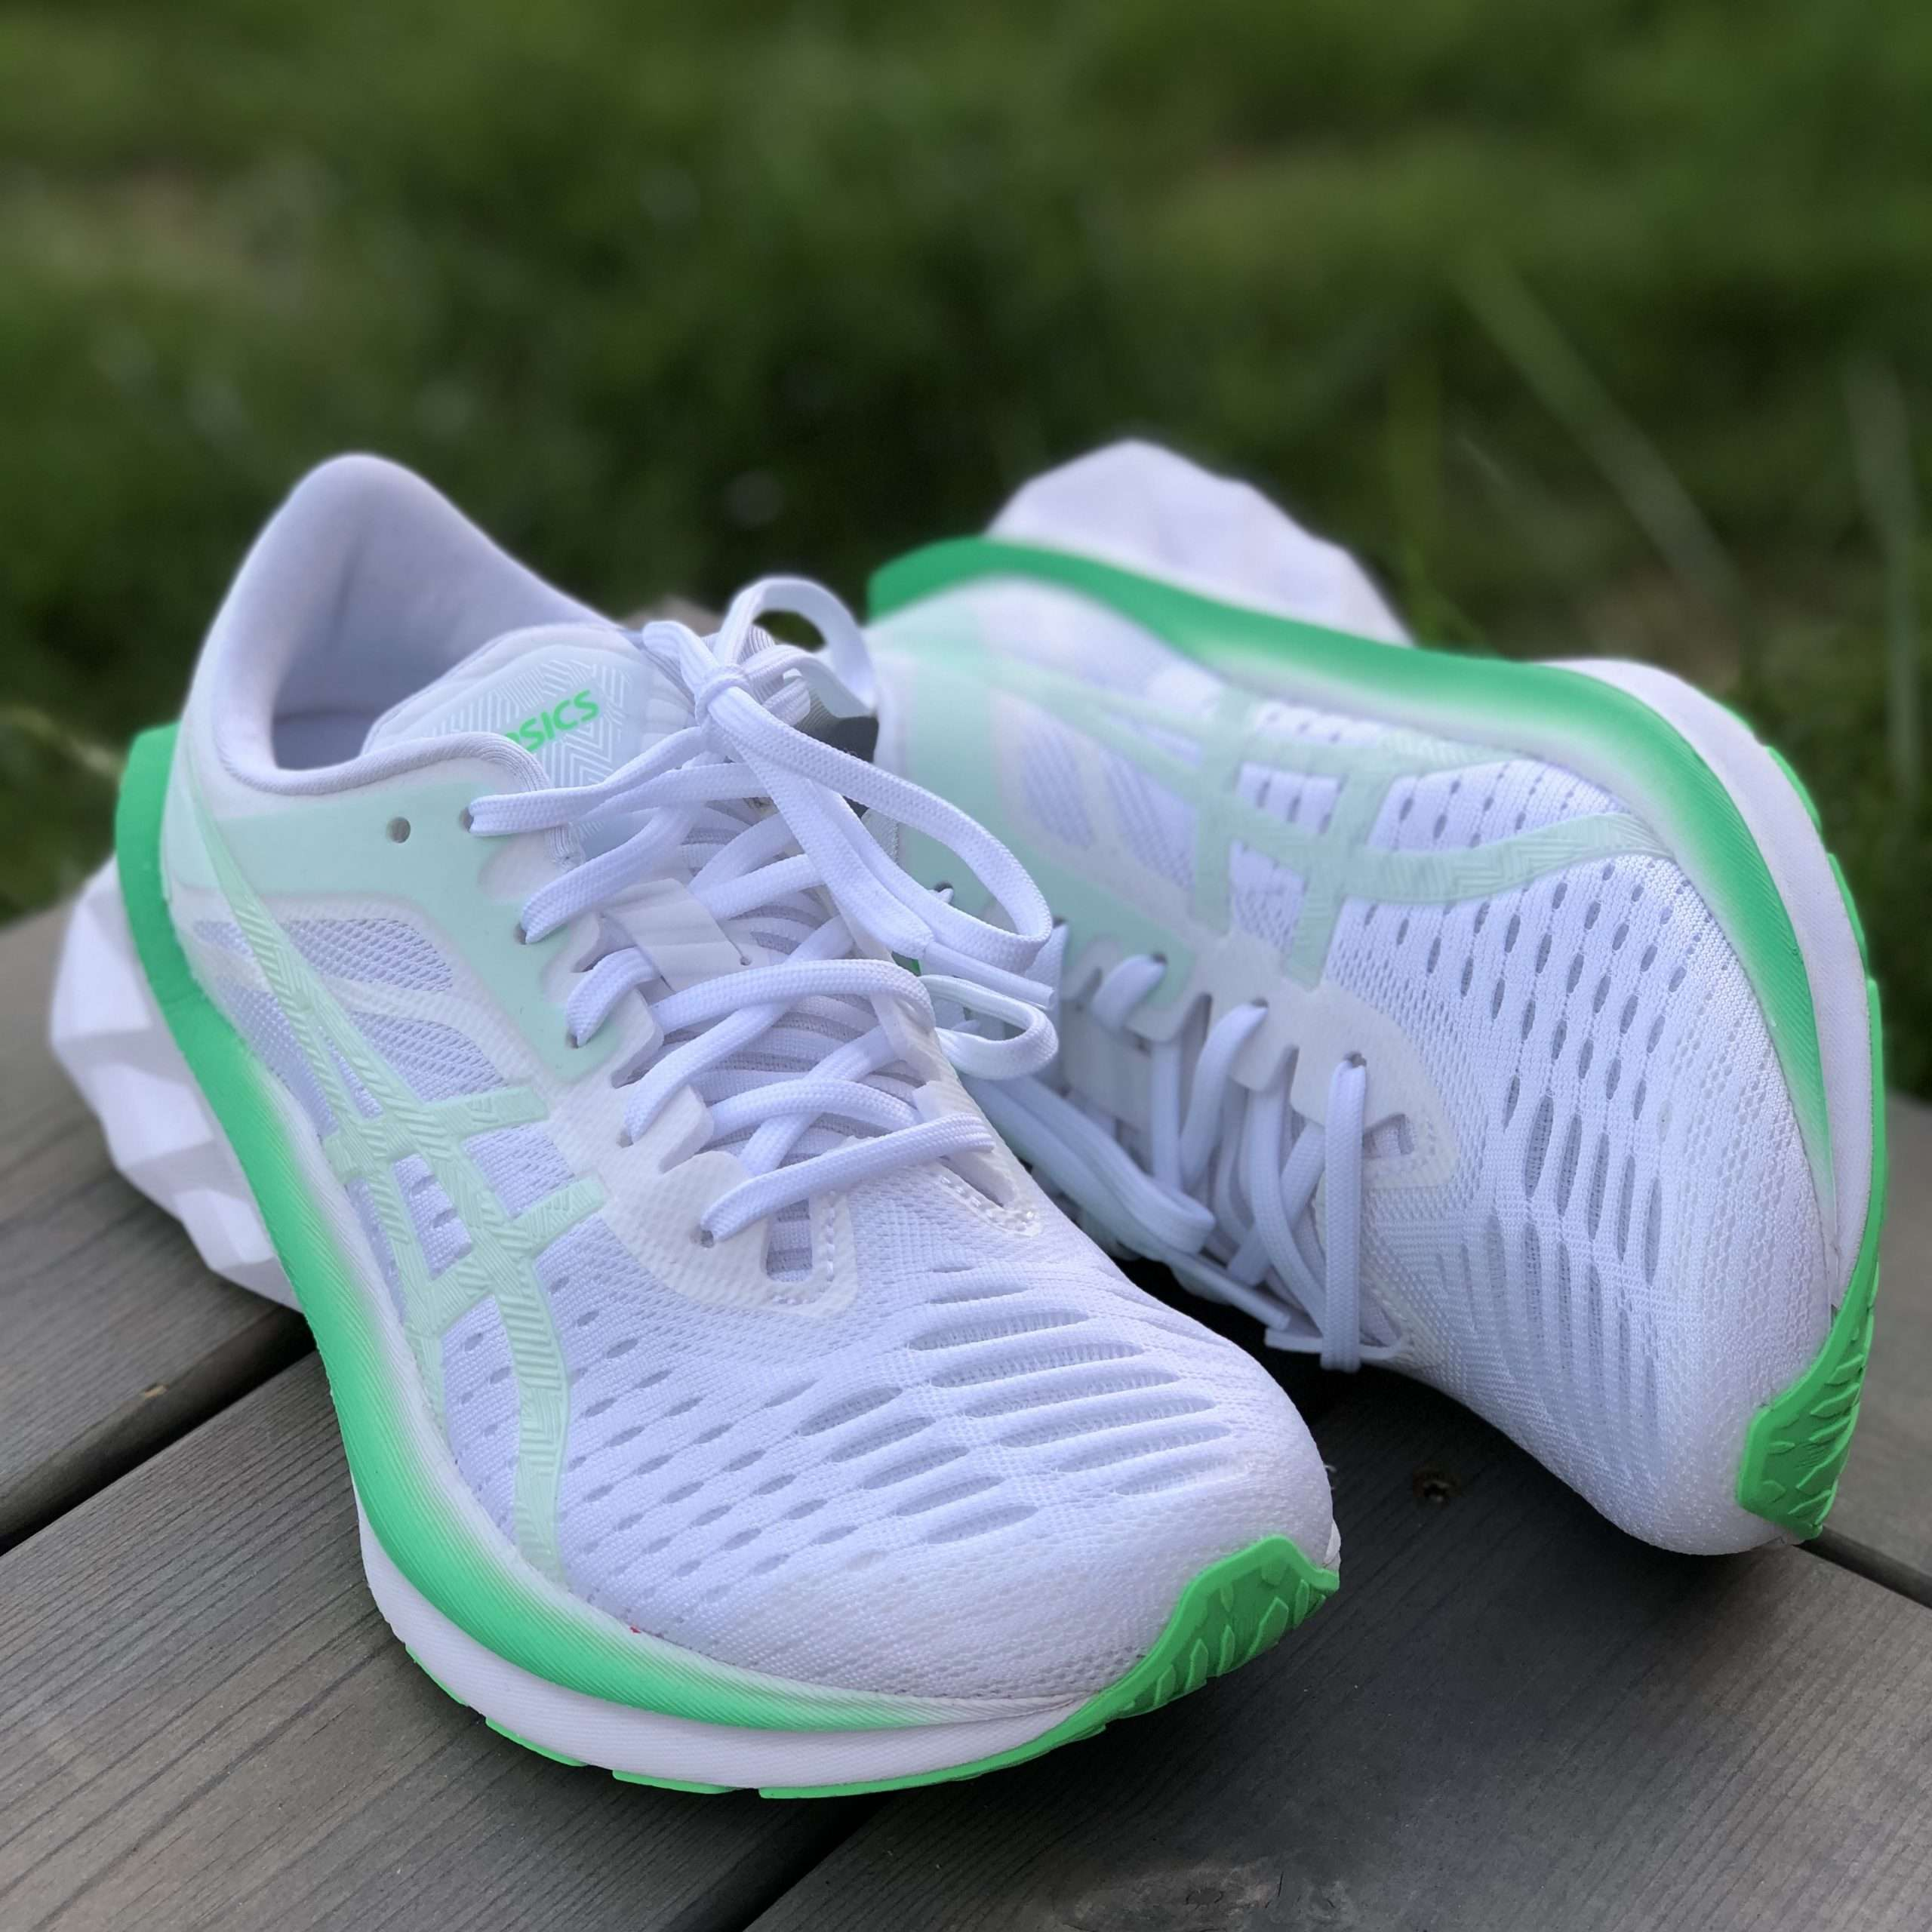 Asics Novablast Womens White and Mint Green